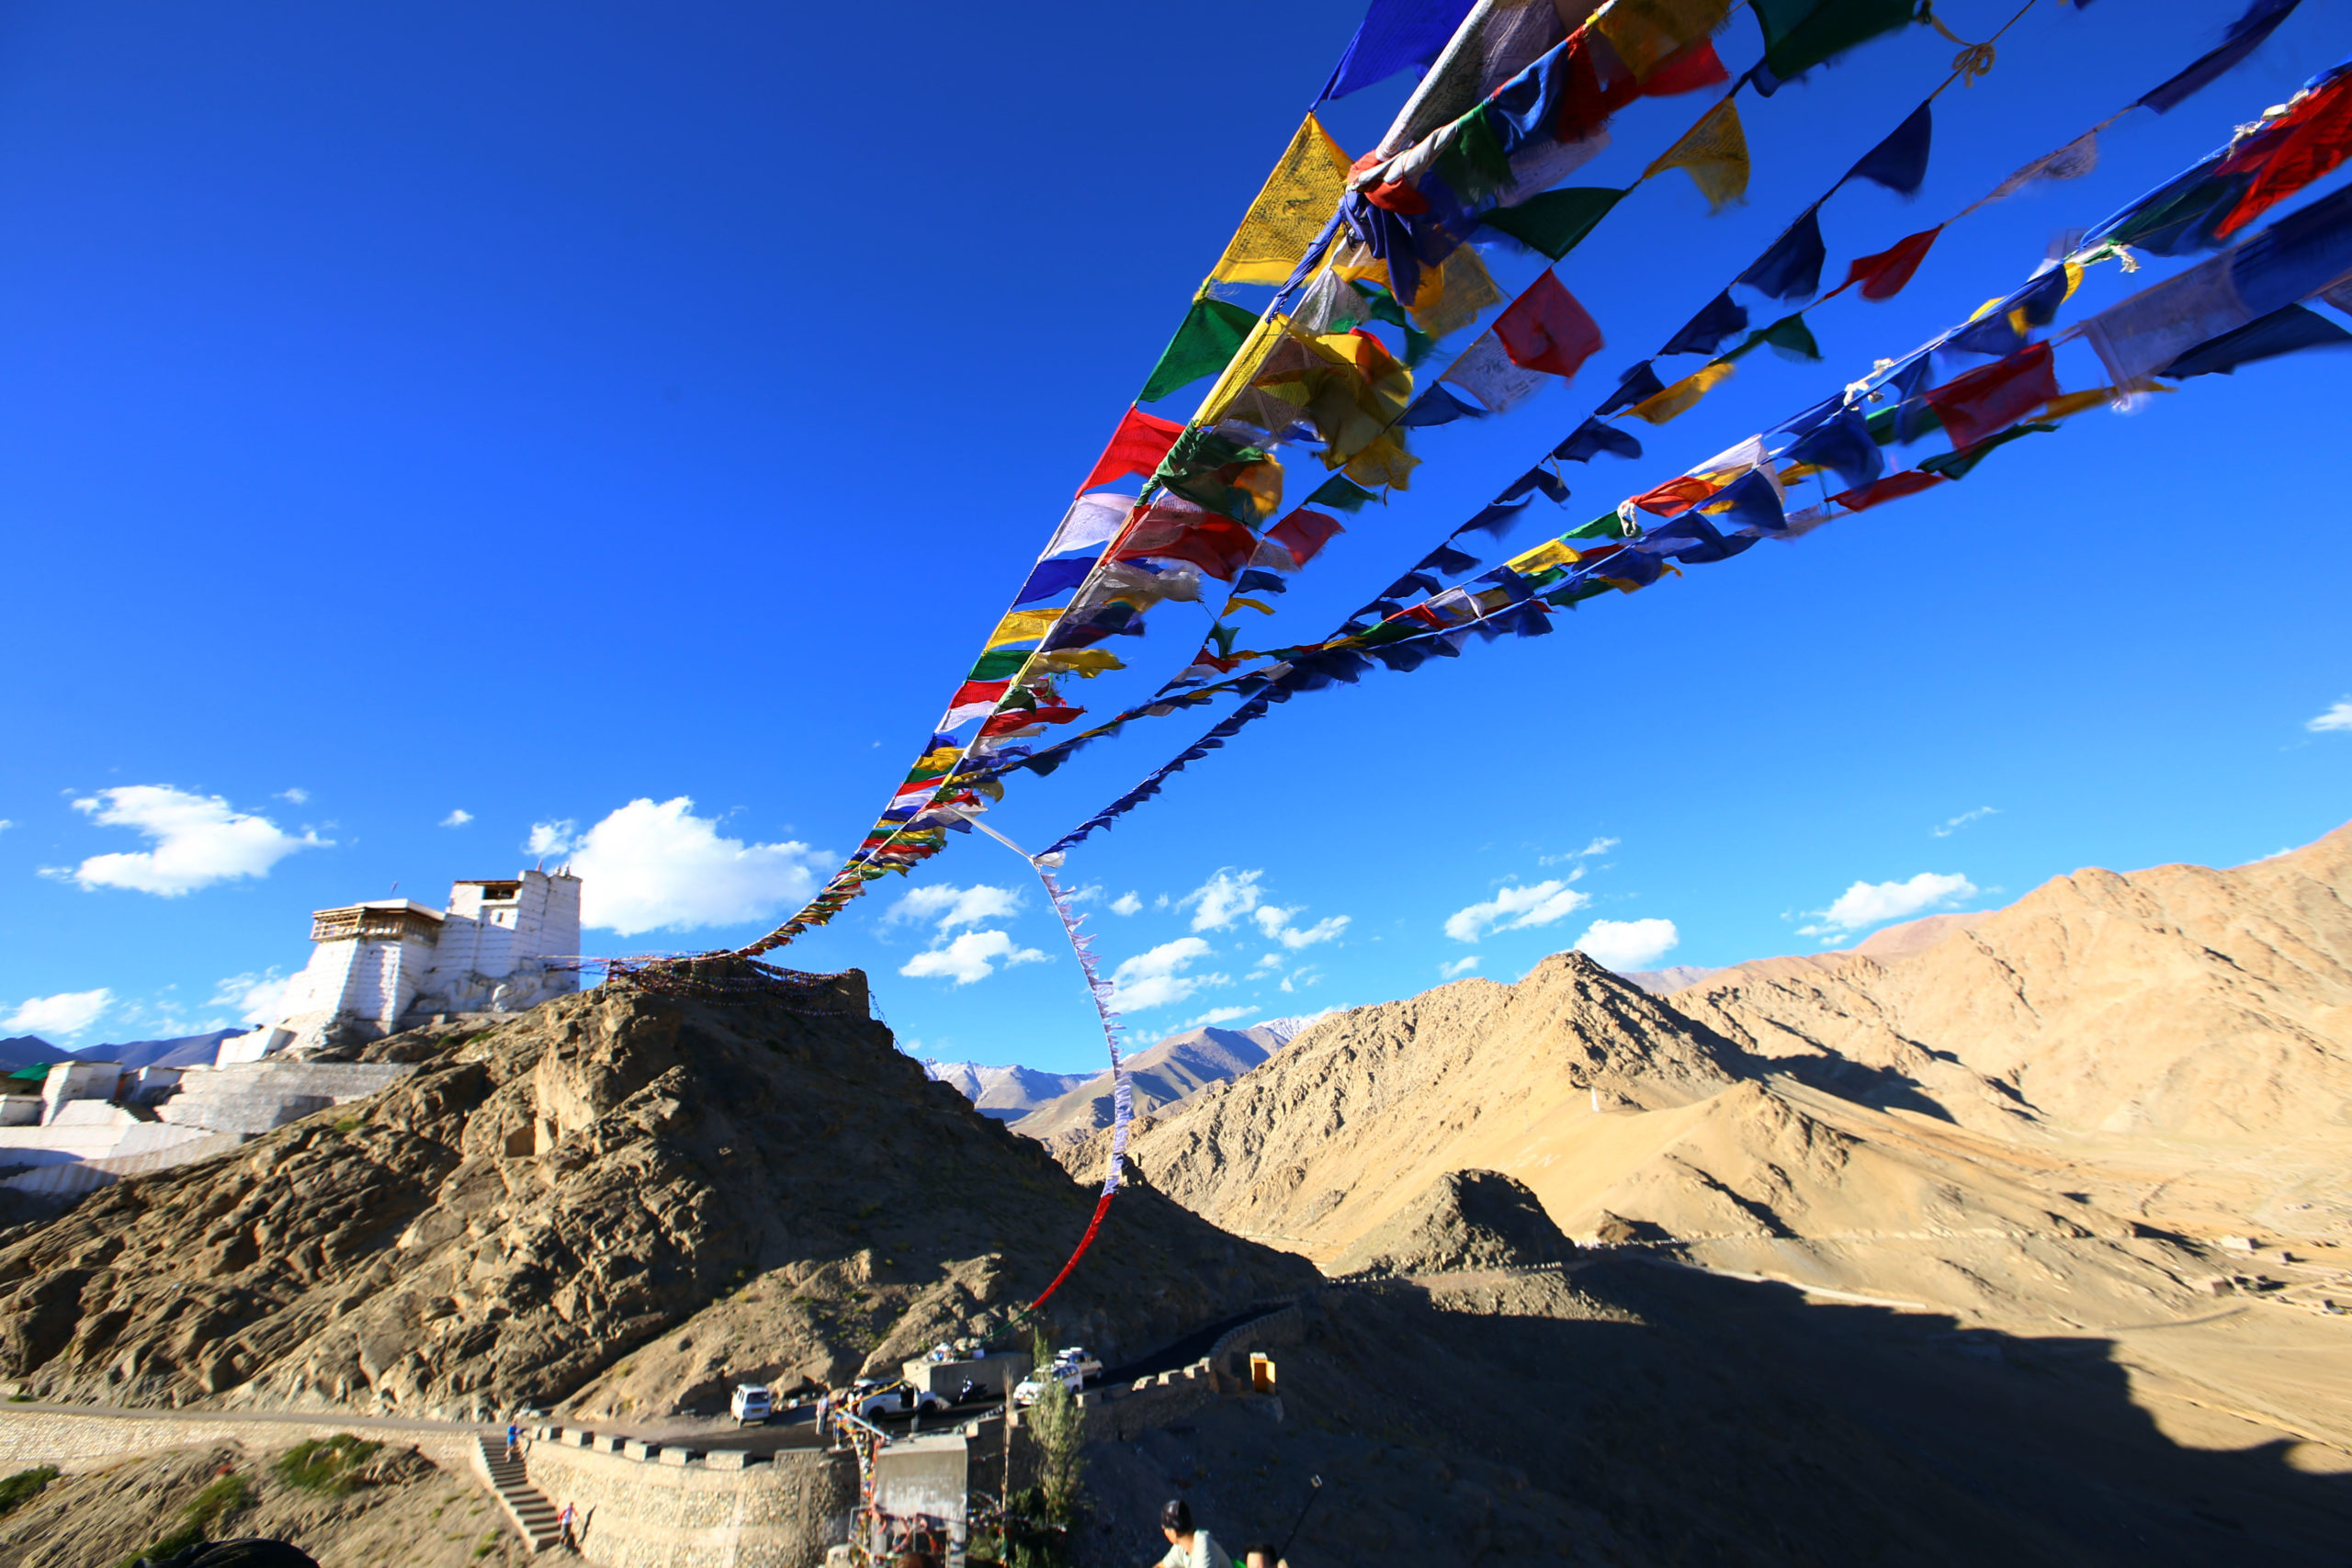 colourful-buddism-flags-at-the-top